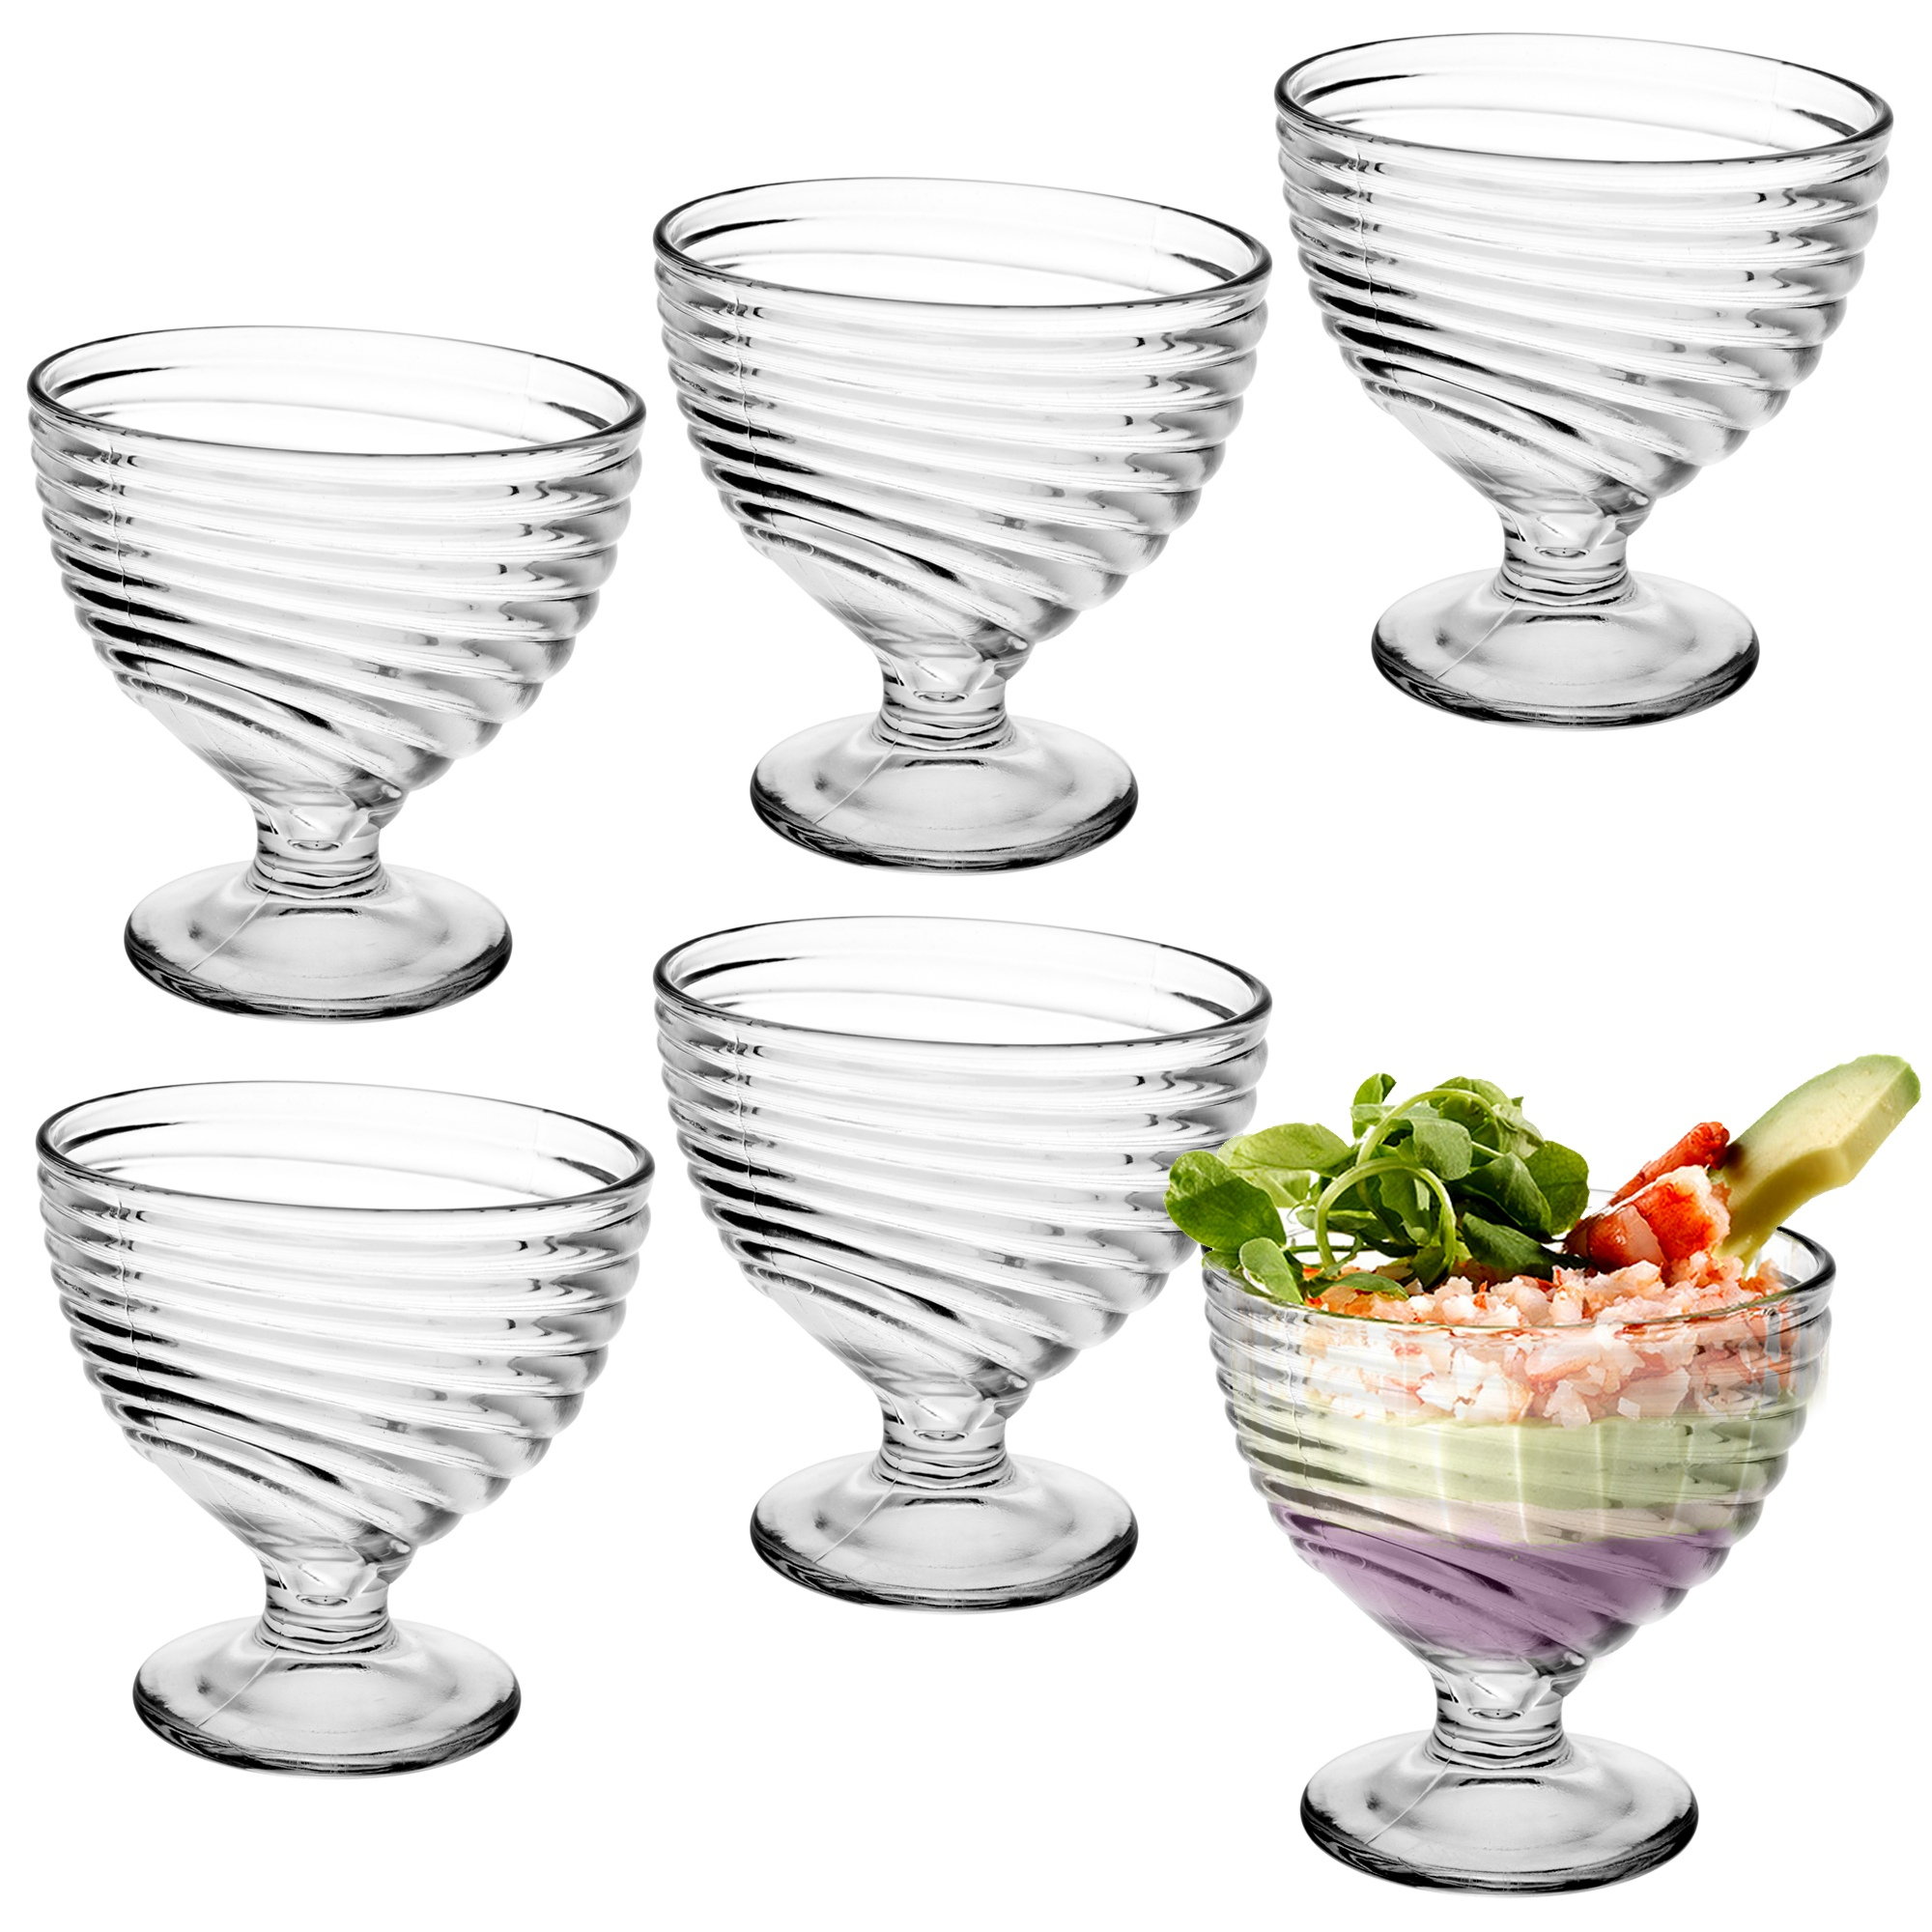 6 Ice Cream Sundae Glass Footed Appetizer Dessert Cocktail Fruit Pudding Dishes Cup and Saucer Tableware, Serving & Linen